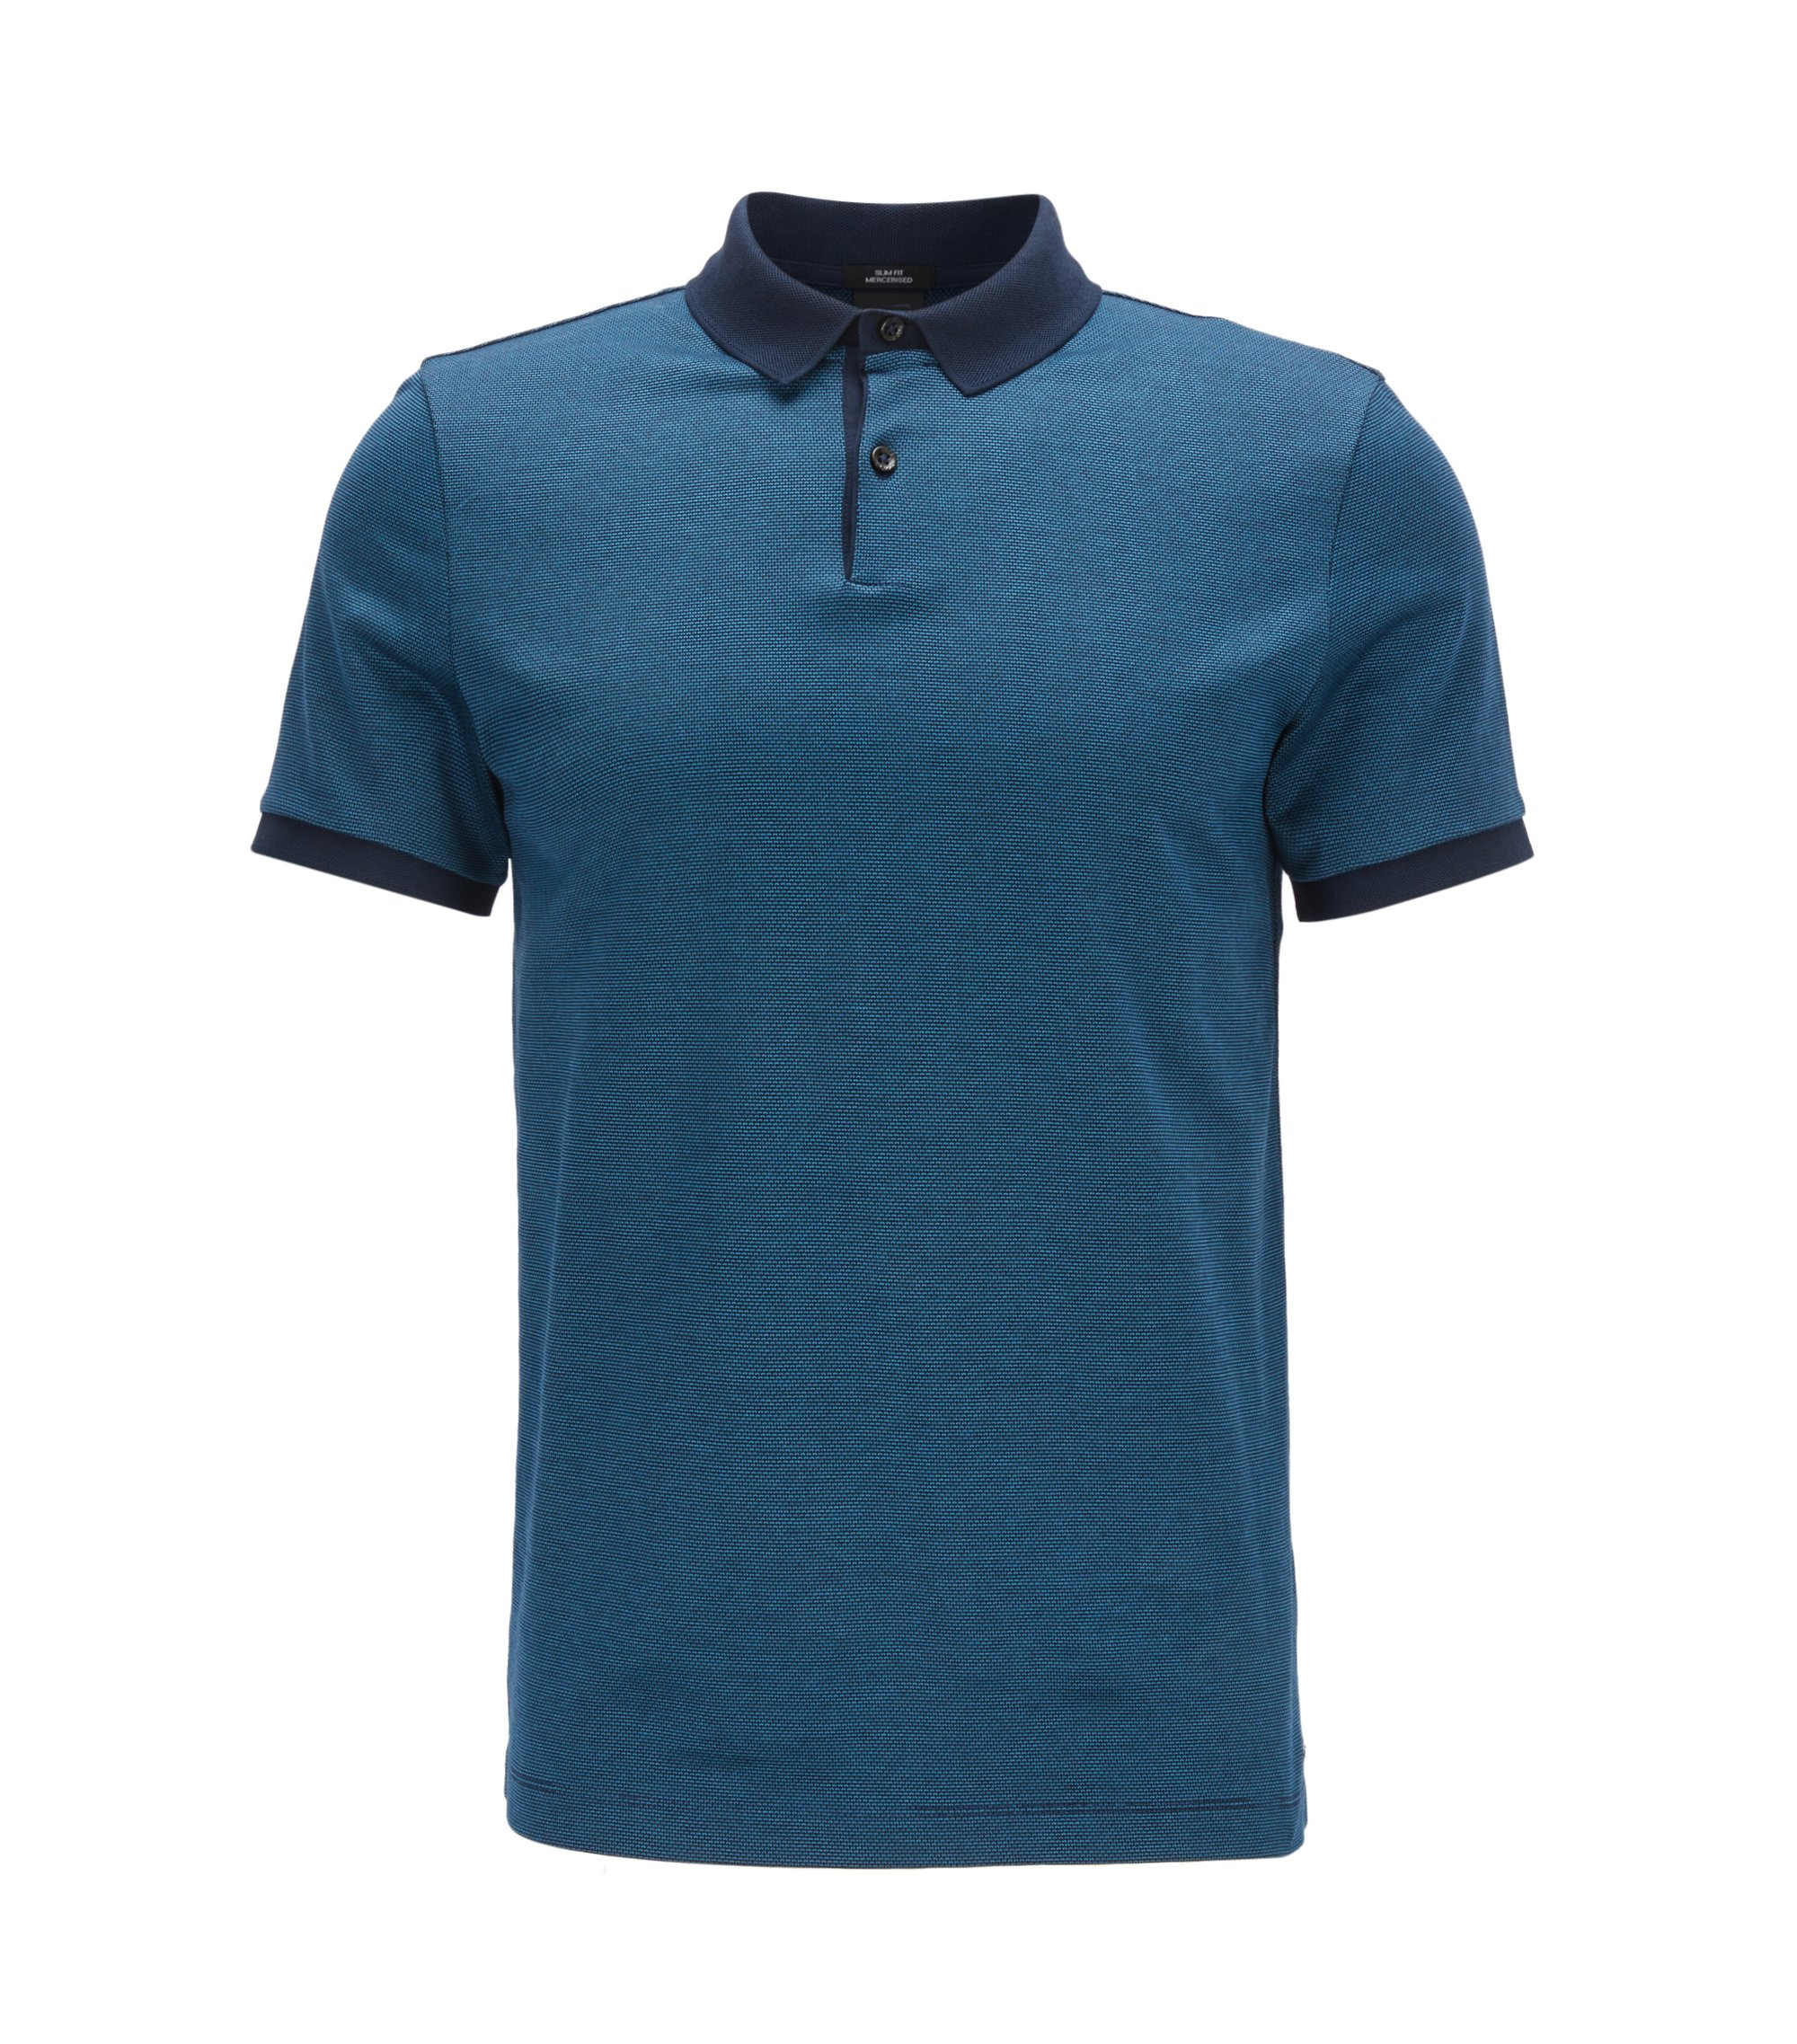 Polo slim fit in cotone jacquard mercerizzato, Blu scuro